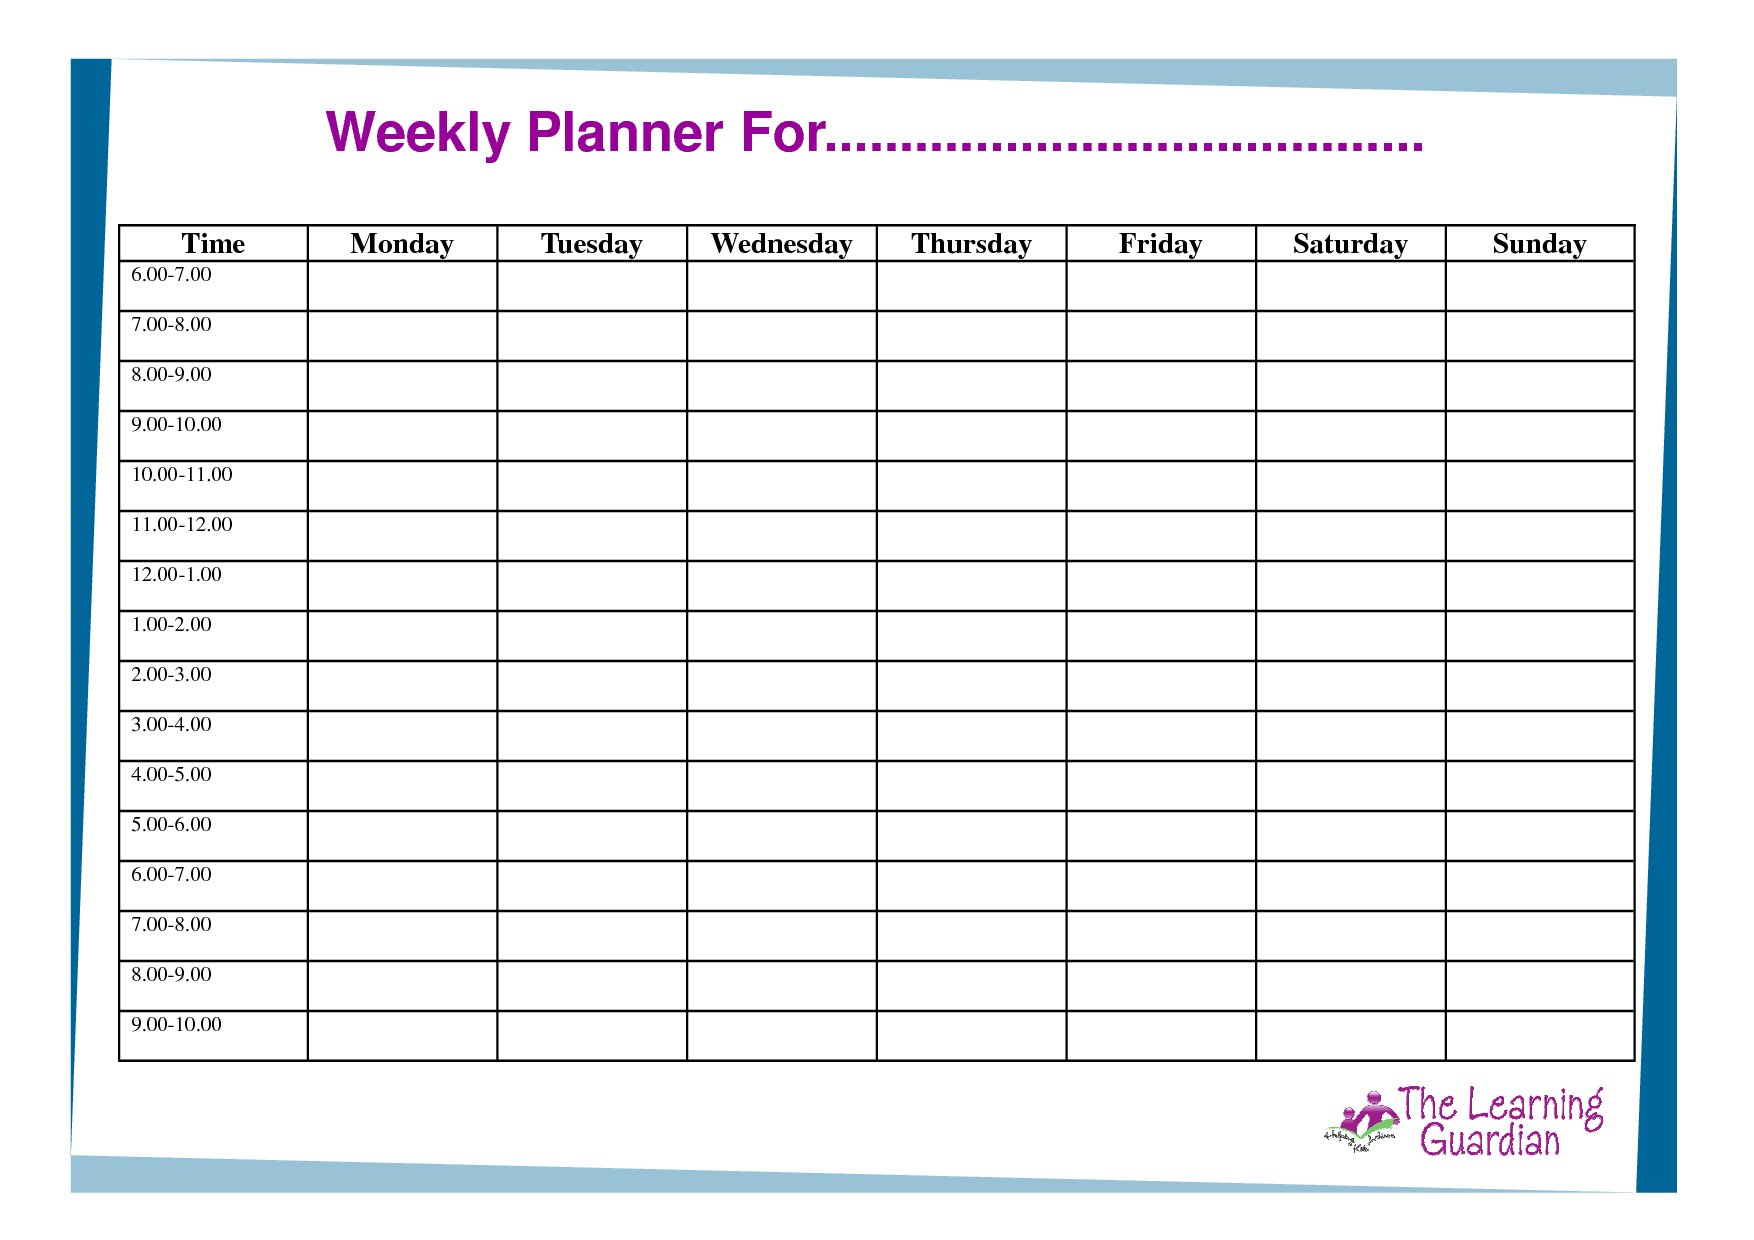 Daily Hourly Calendar Template Free   Daily Calendar Printable Hourly Schedule Free